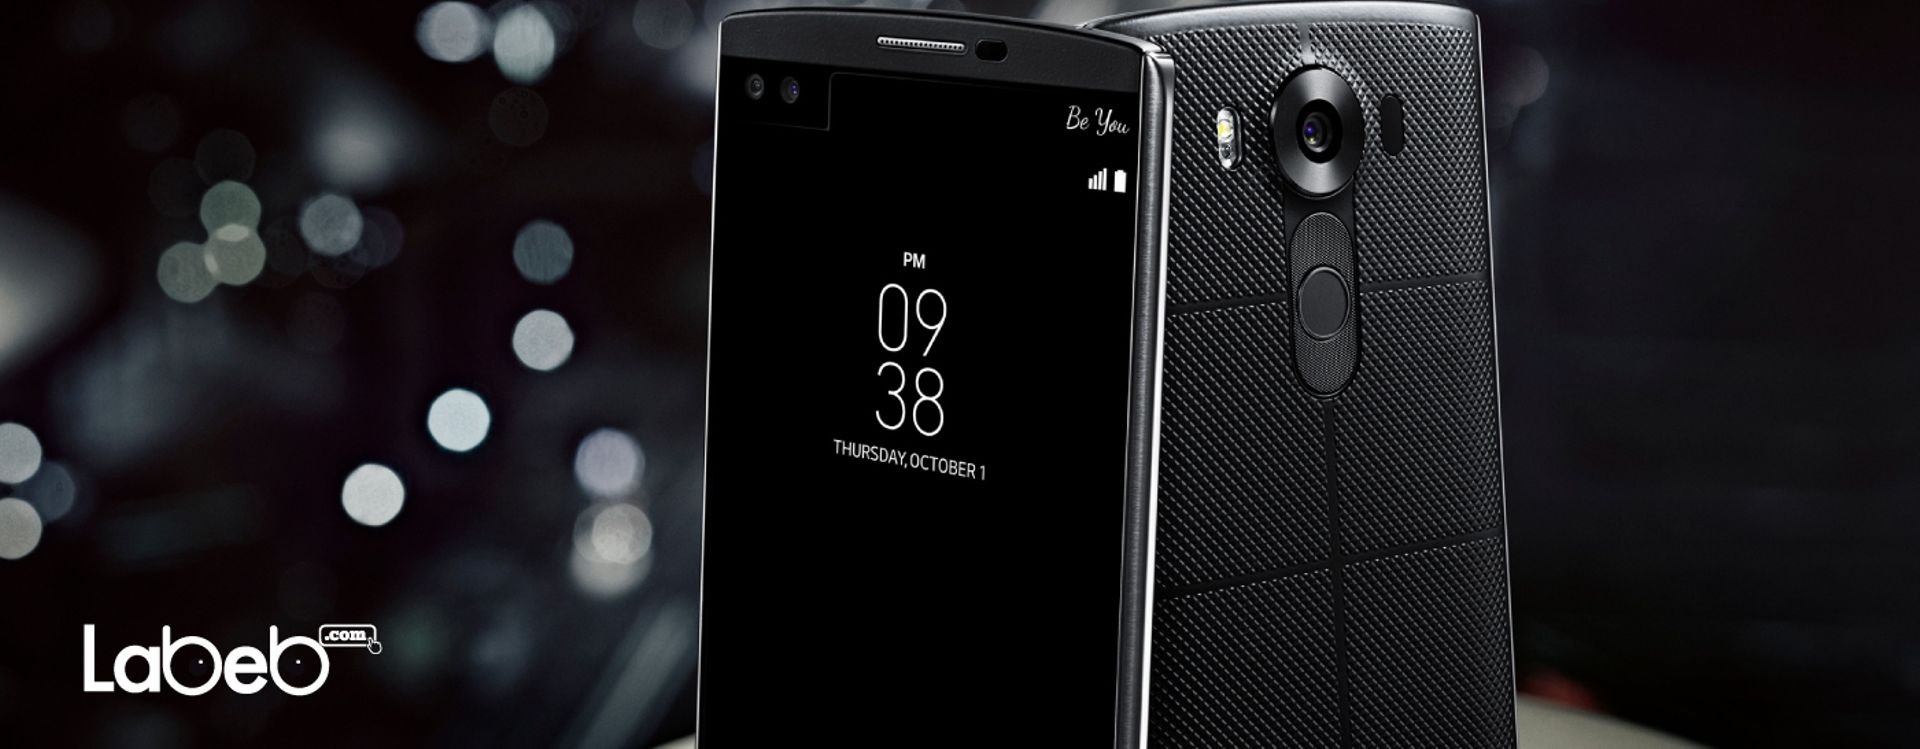 LG V10 Smartphone with 2 Screens and 2 Front Cameras.